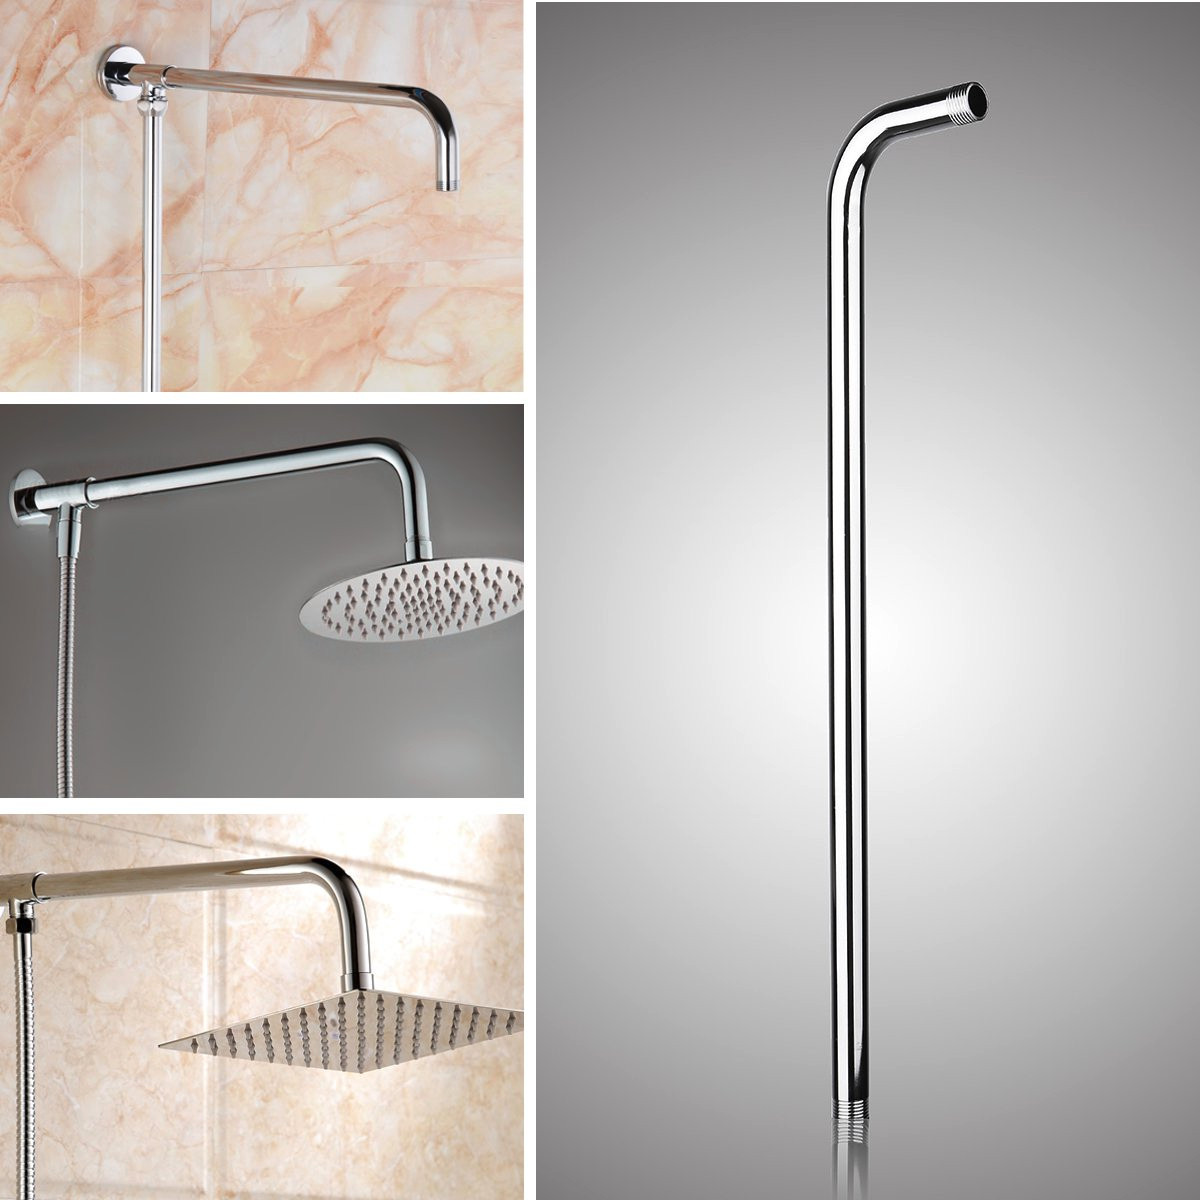 Superbe 24u0027u0027(60cm) Stainless Steel Rainfall Shower Head Arm Round Wall Mounted Tube